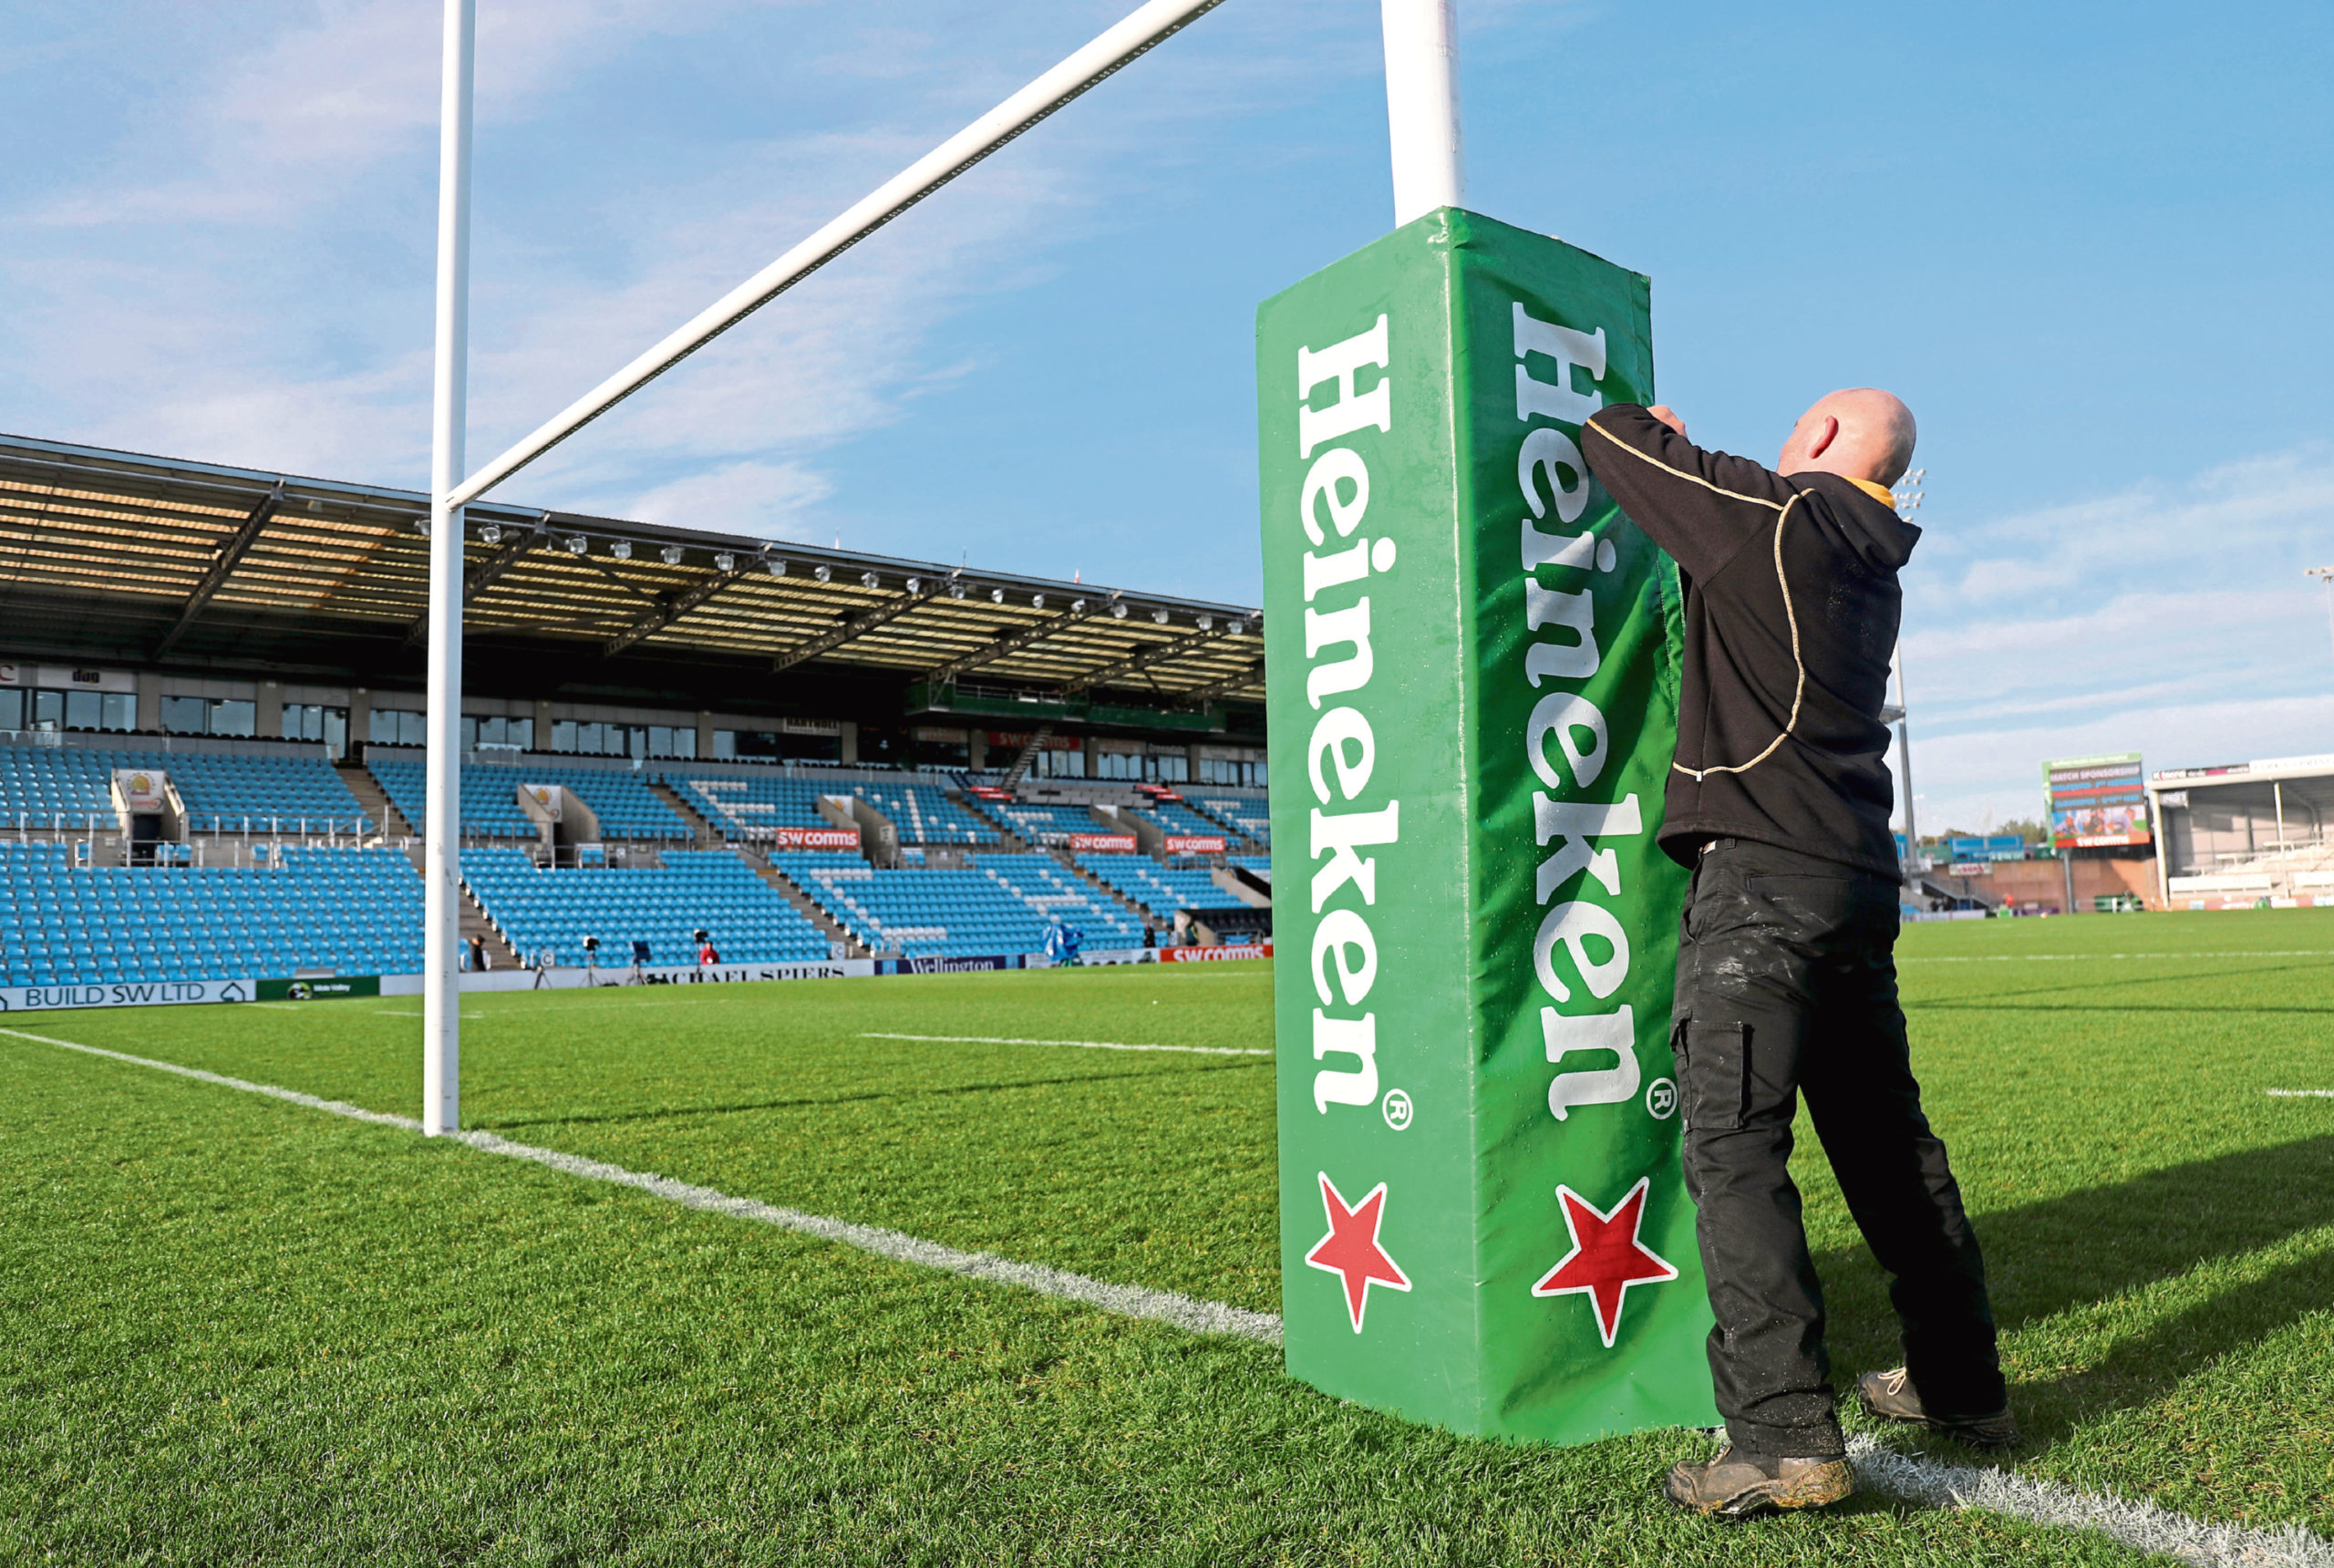 Mandatory Credit: Photo by Dan Sheridan/INPHO/Shutterstock (10529575l) Exeter Chiefs vs La Rochelle. Staff prepare the pitch at Sandy Park ahead of the game Heineken Champions Cup Round 6, Sandy Park, Exeter, England, UK - 18 Jan 2020